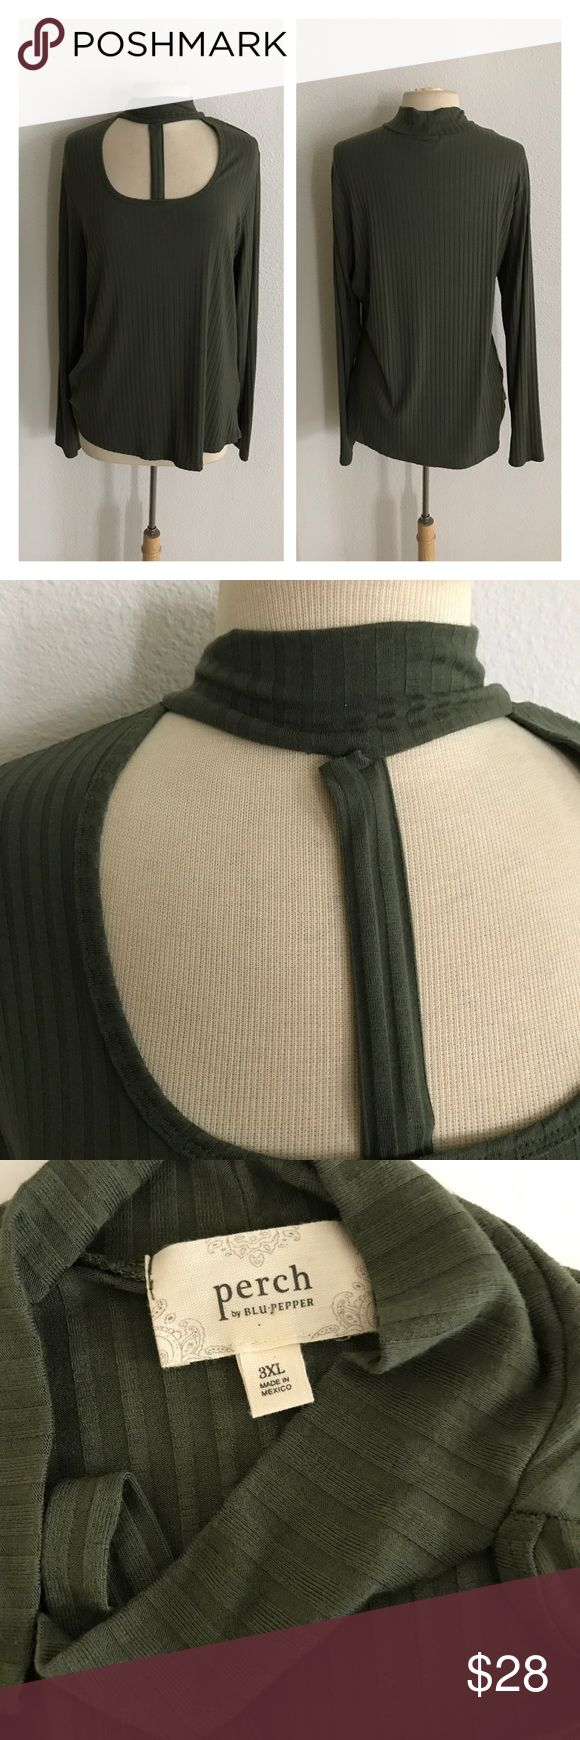 "NWOT Green Strappy top *runs slightly small Strappy olive green top. Size 3x- runs slightly small and fits me perfectly as a 2x/16/18. Measures 28"" long with a 42"" bust. Super soft and very stretchy! Purchased by me from a local boutique and never worn. Brand new without tags. Please note: the strap has slightly separated from the neckline. It isn't visible when being worn, but it is slightly damaged.  💲Reasonable offers accepted ✅Bundle offers Blu Pepper Tops"